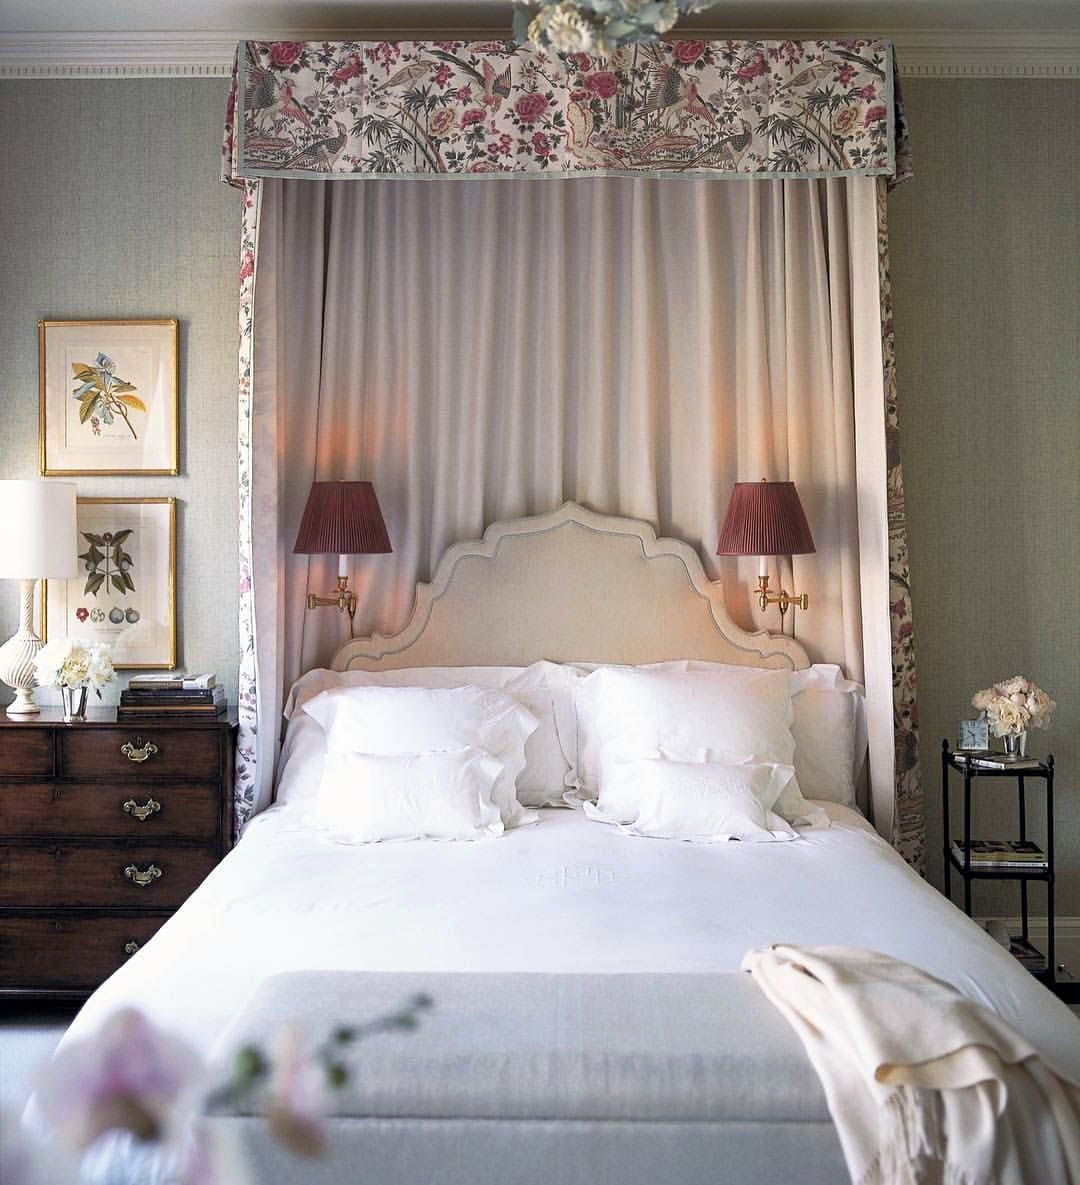 Canopy Bed Curtains Target Best Home Decorating Ideas